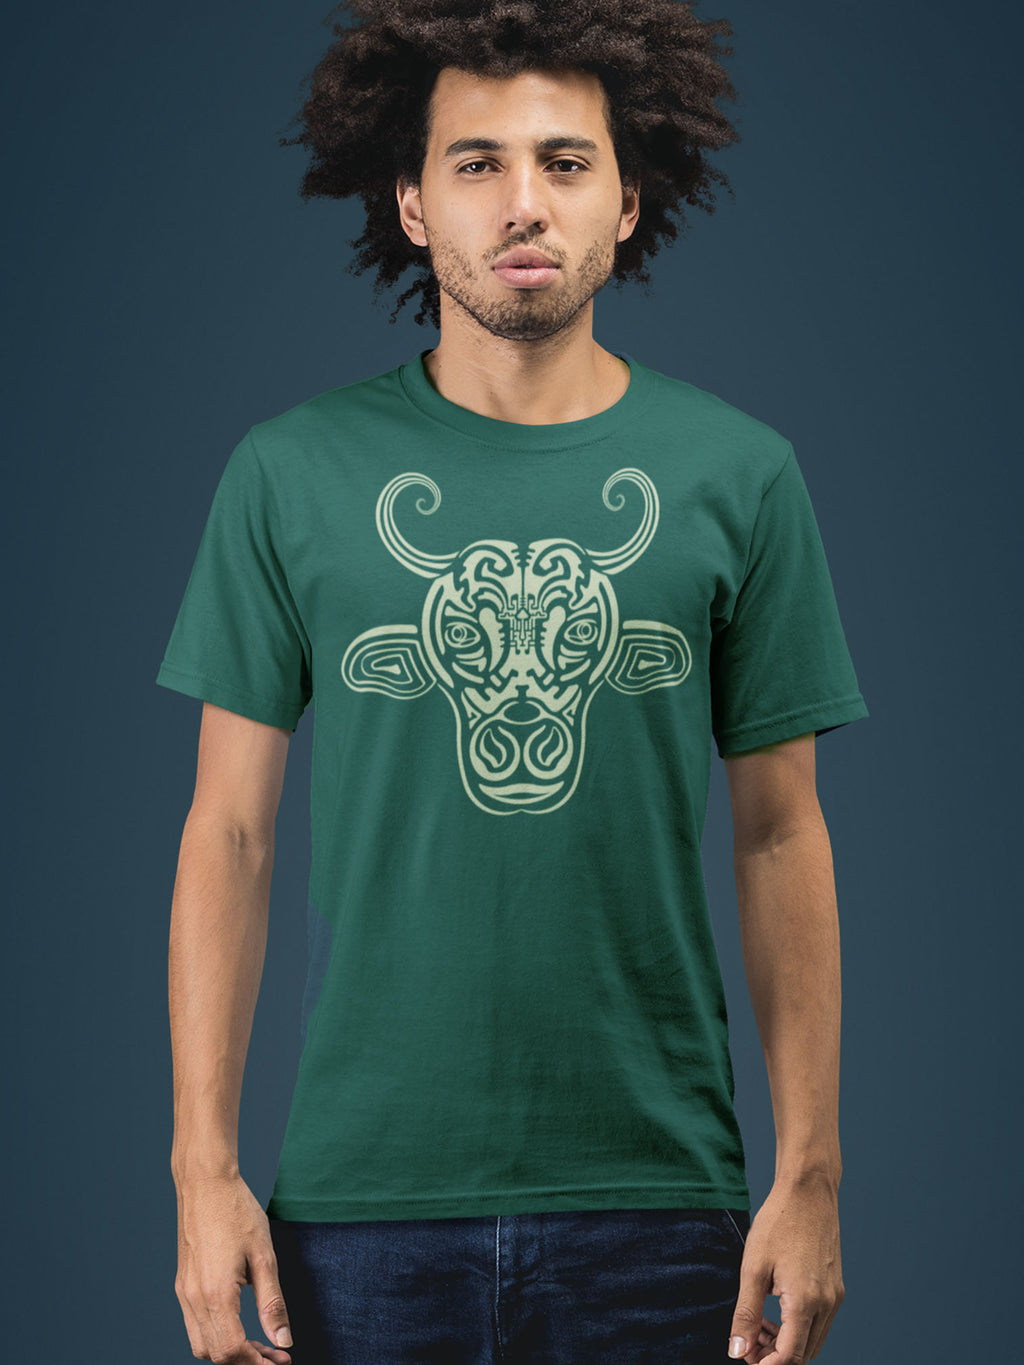 Holy Cow Made To Order Men T-Shirt - Bottle Green